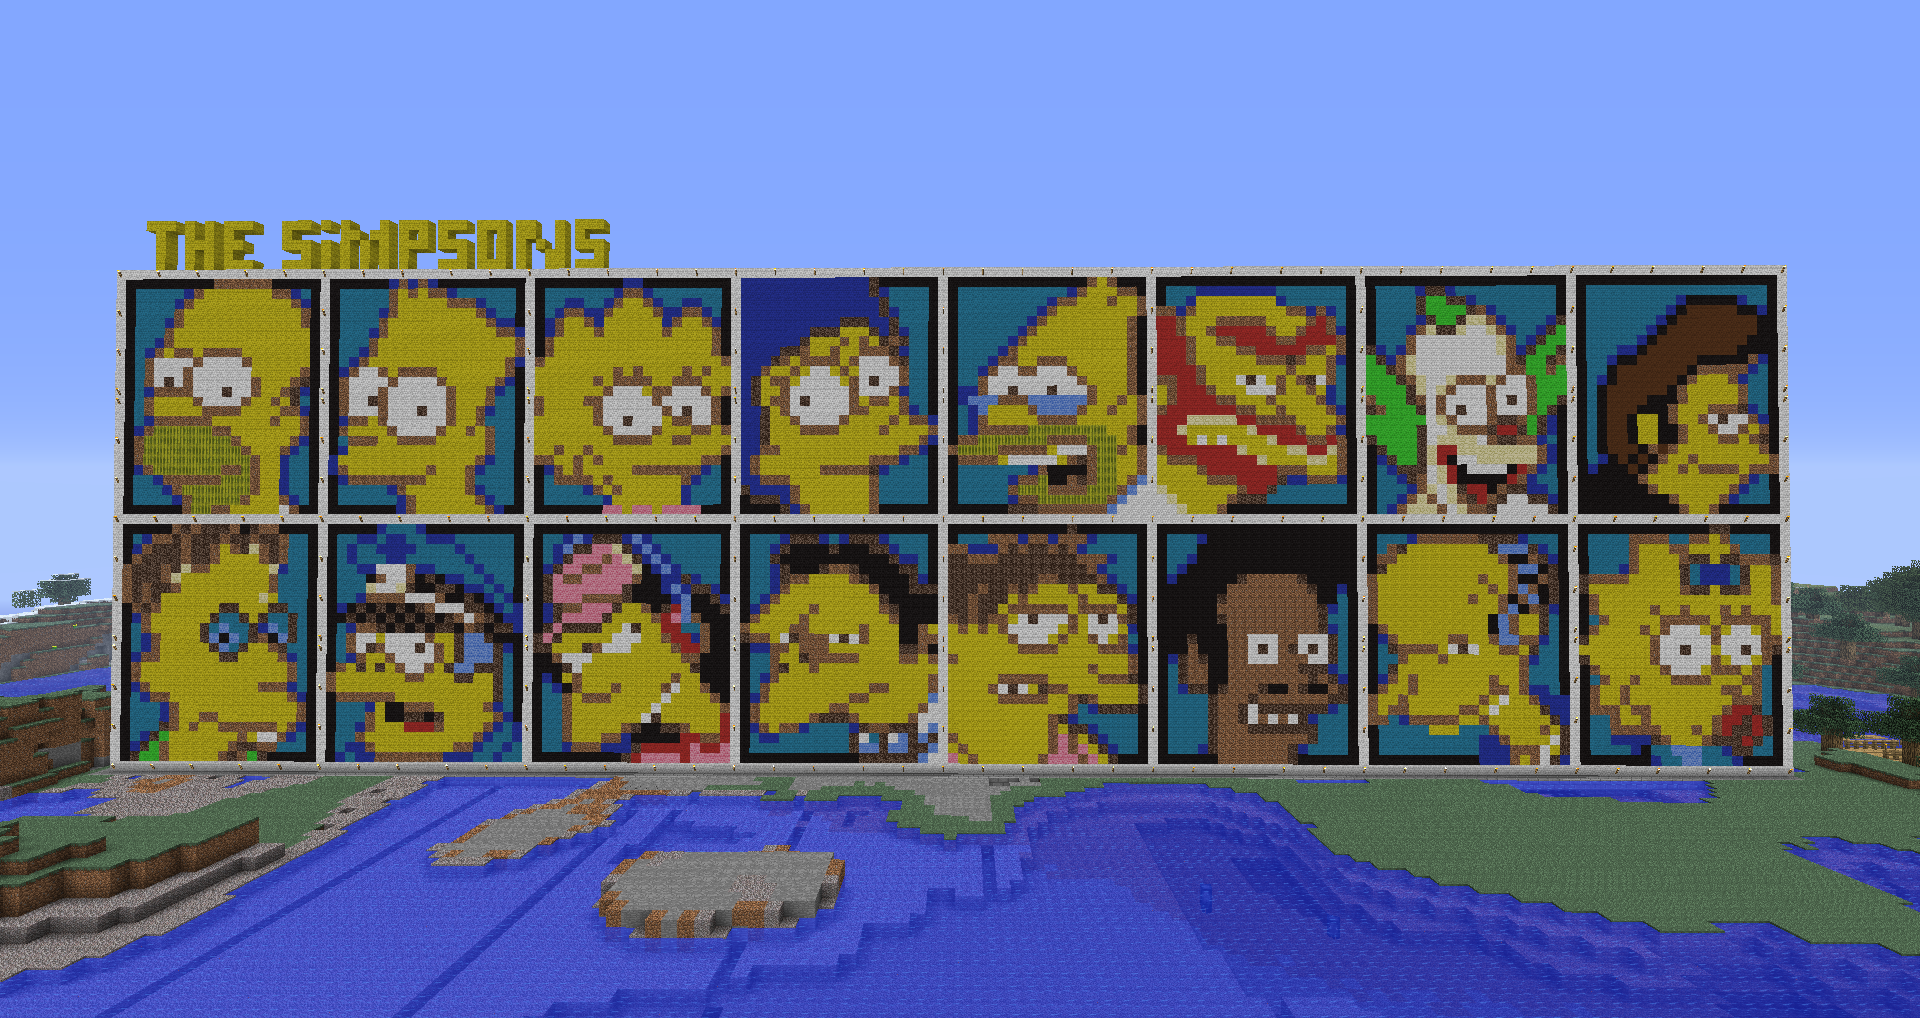 minecraft   the simpsons by luk01-d4hmm6